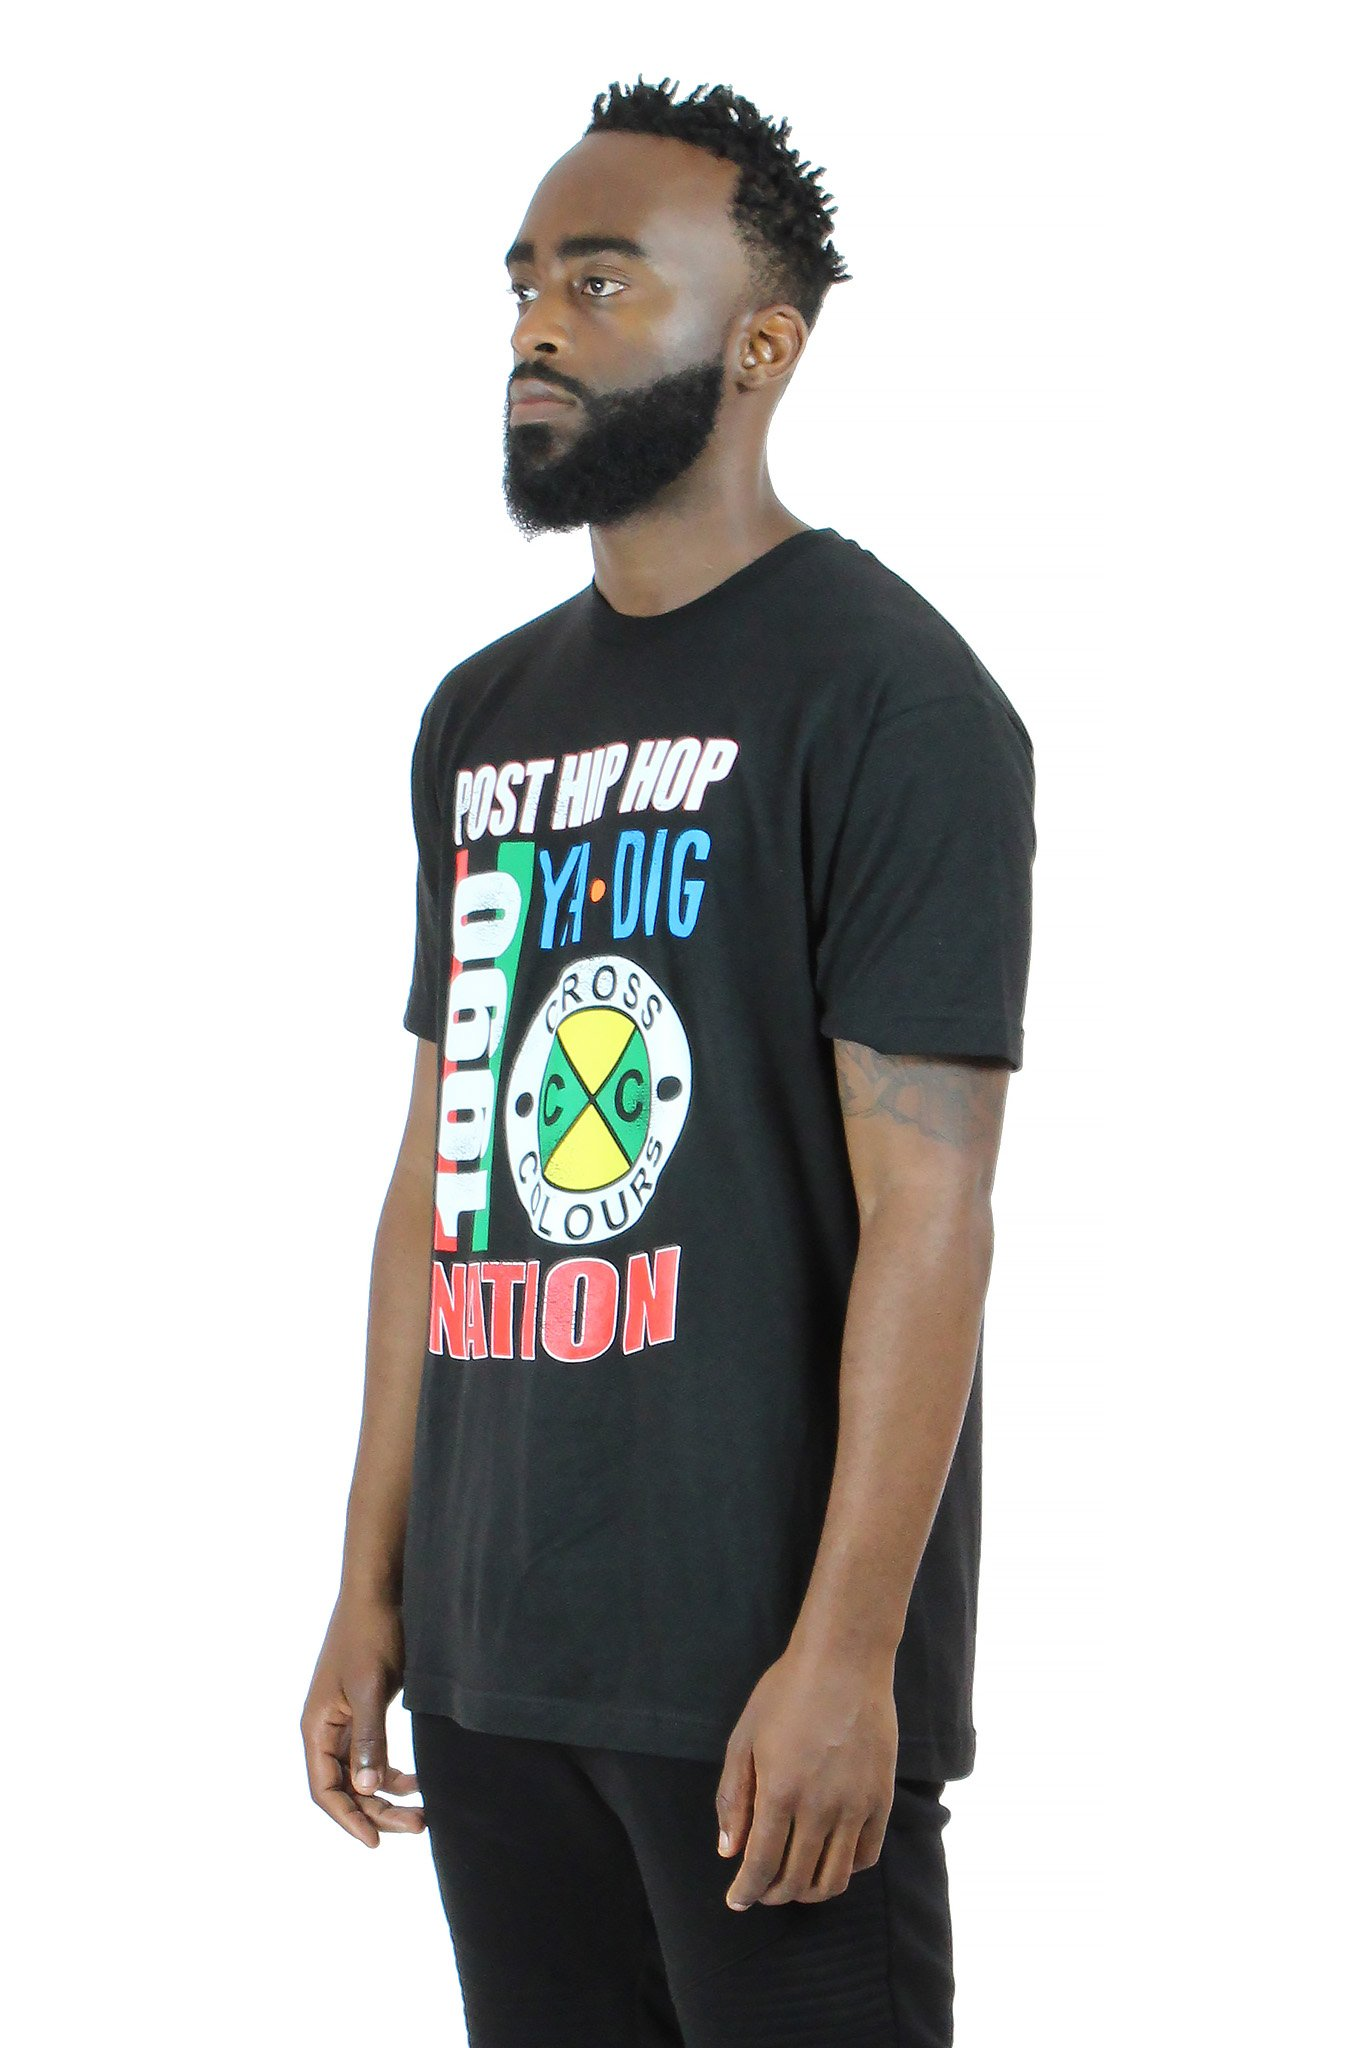 Cross_Colours_Post_Hip_Hop_Nation_TShirt__Black